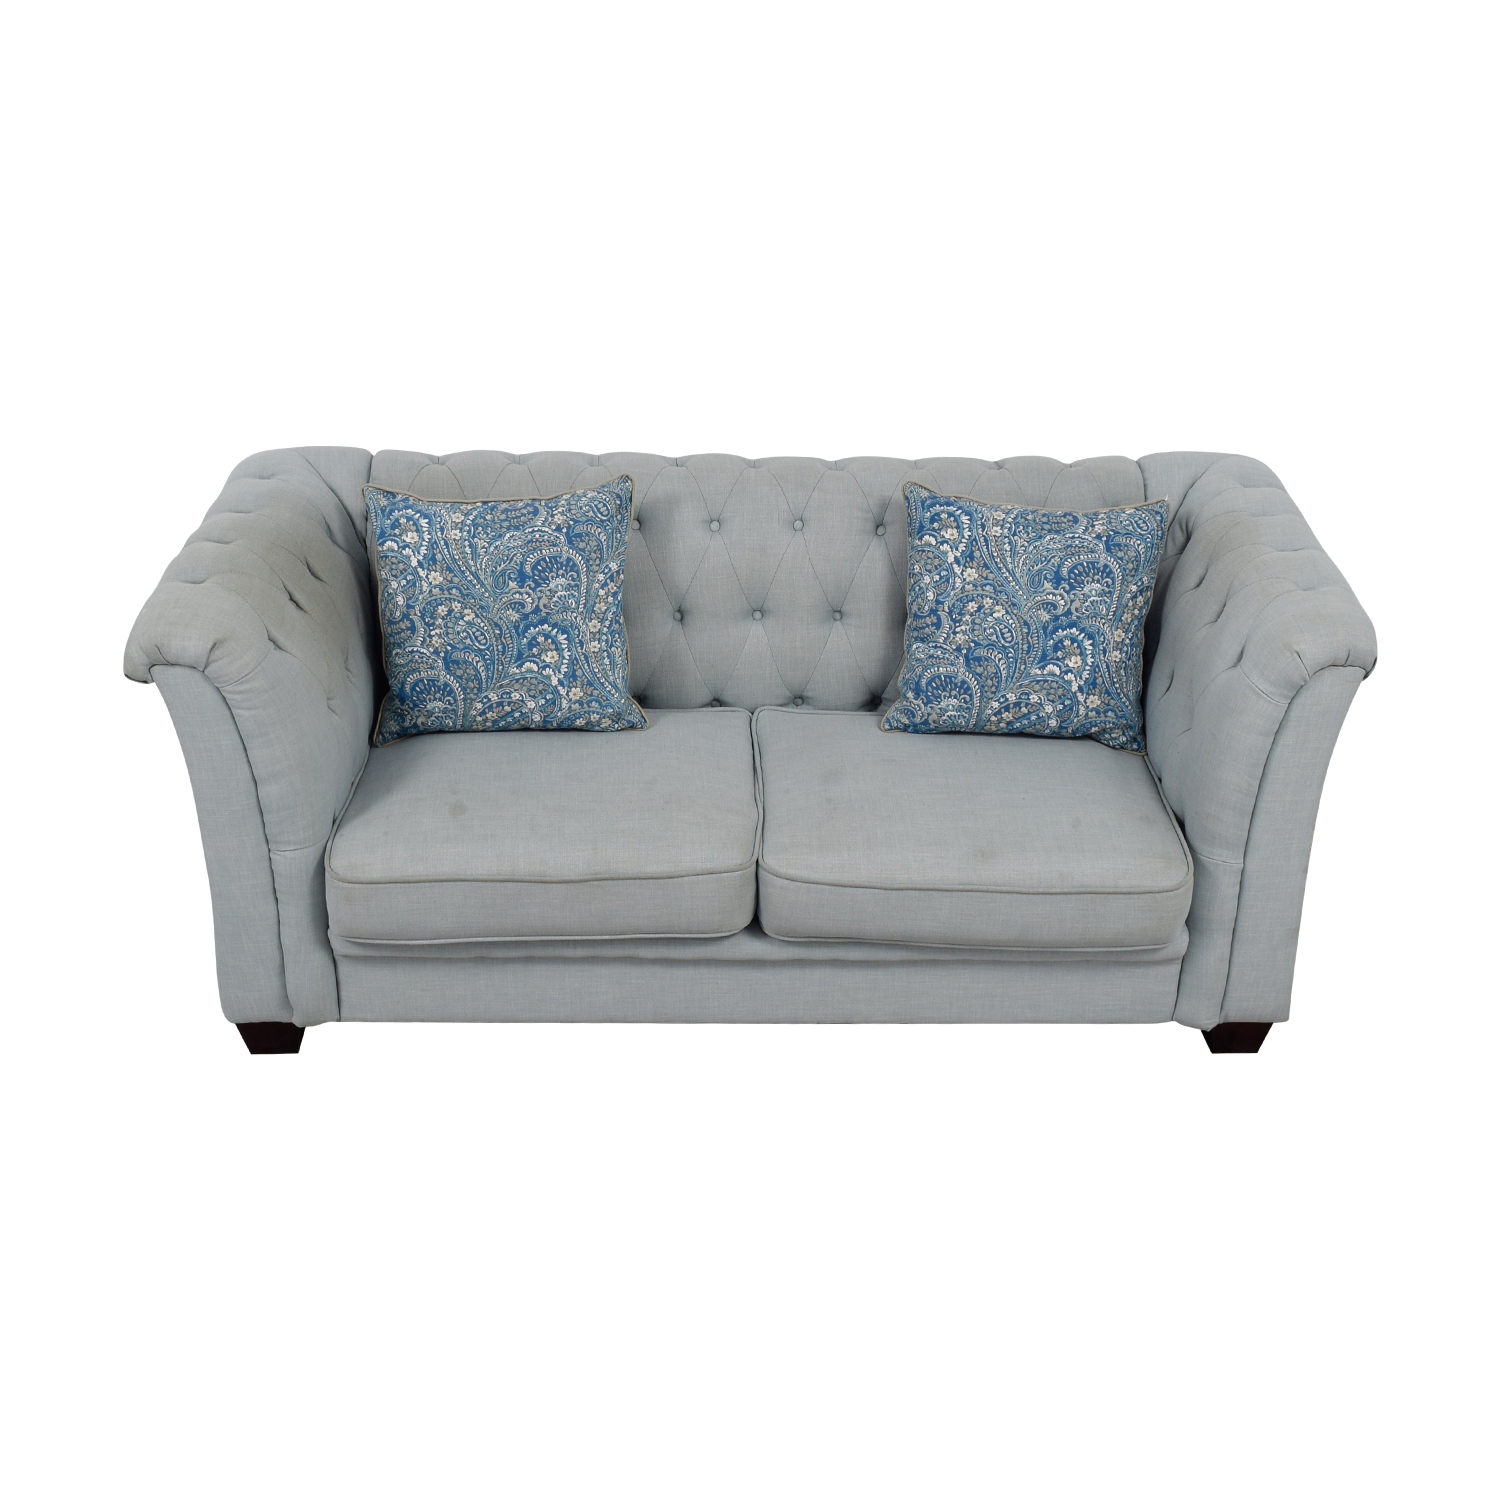 Delvi Furniture Delvi Furniture Sky Blue Tufted Two-Cushion Sofa nyc